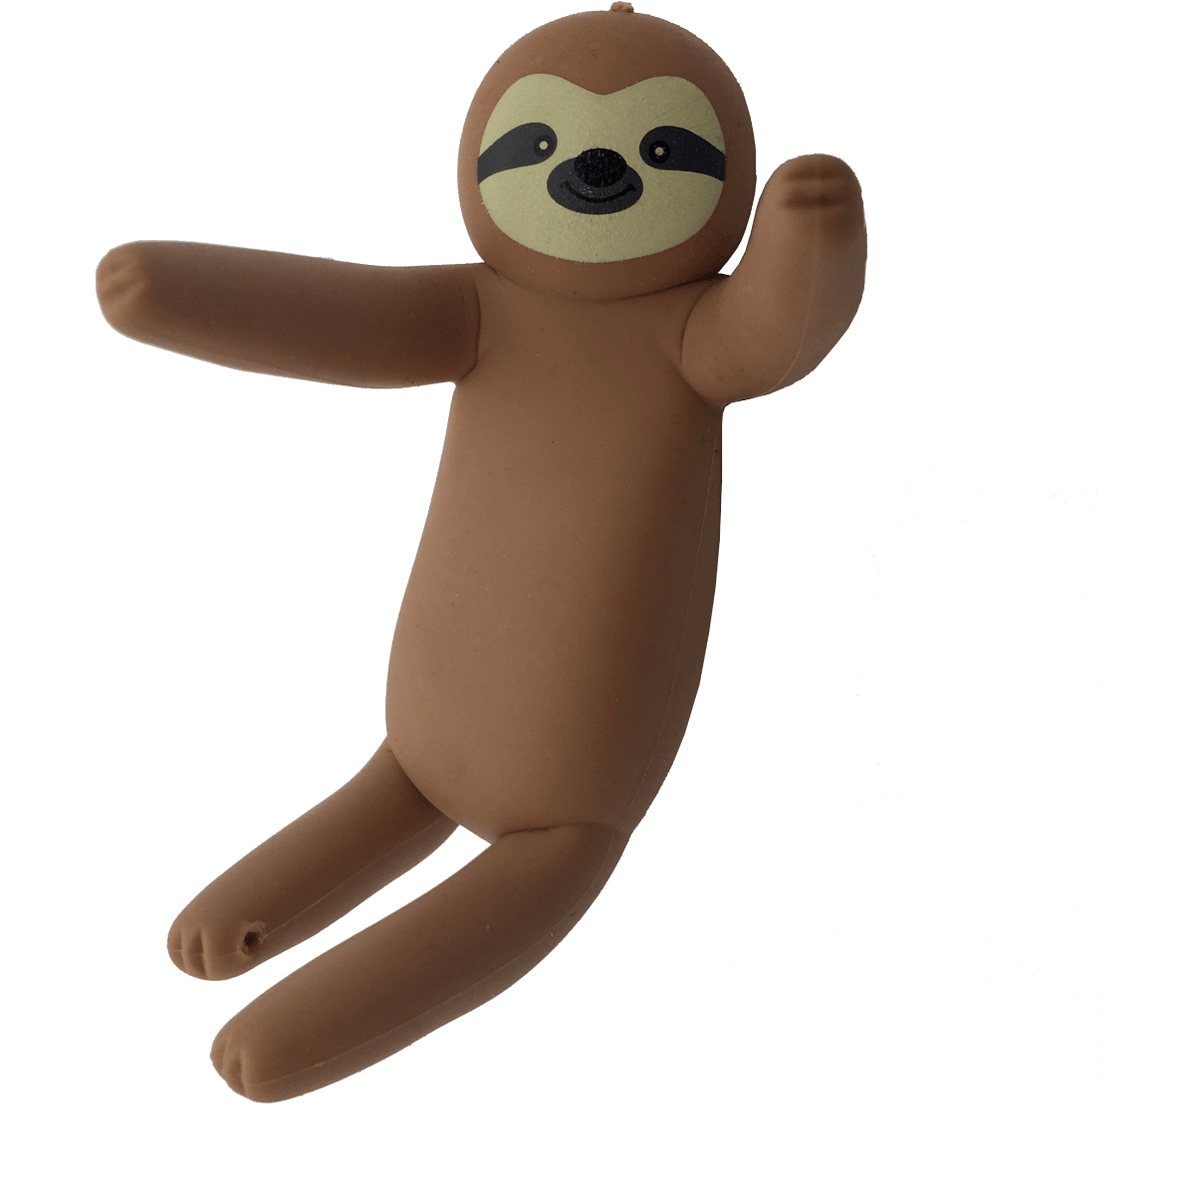 Bendable Sloth Figure